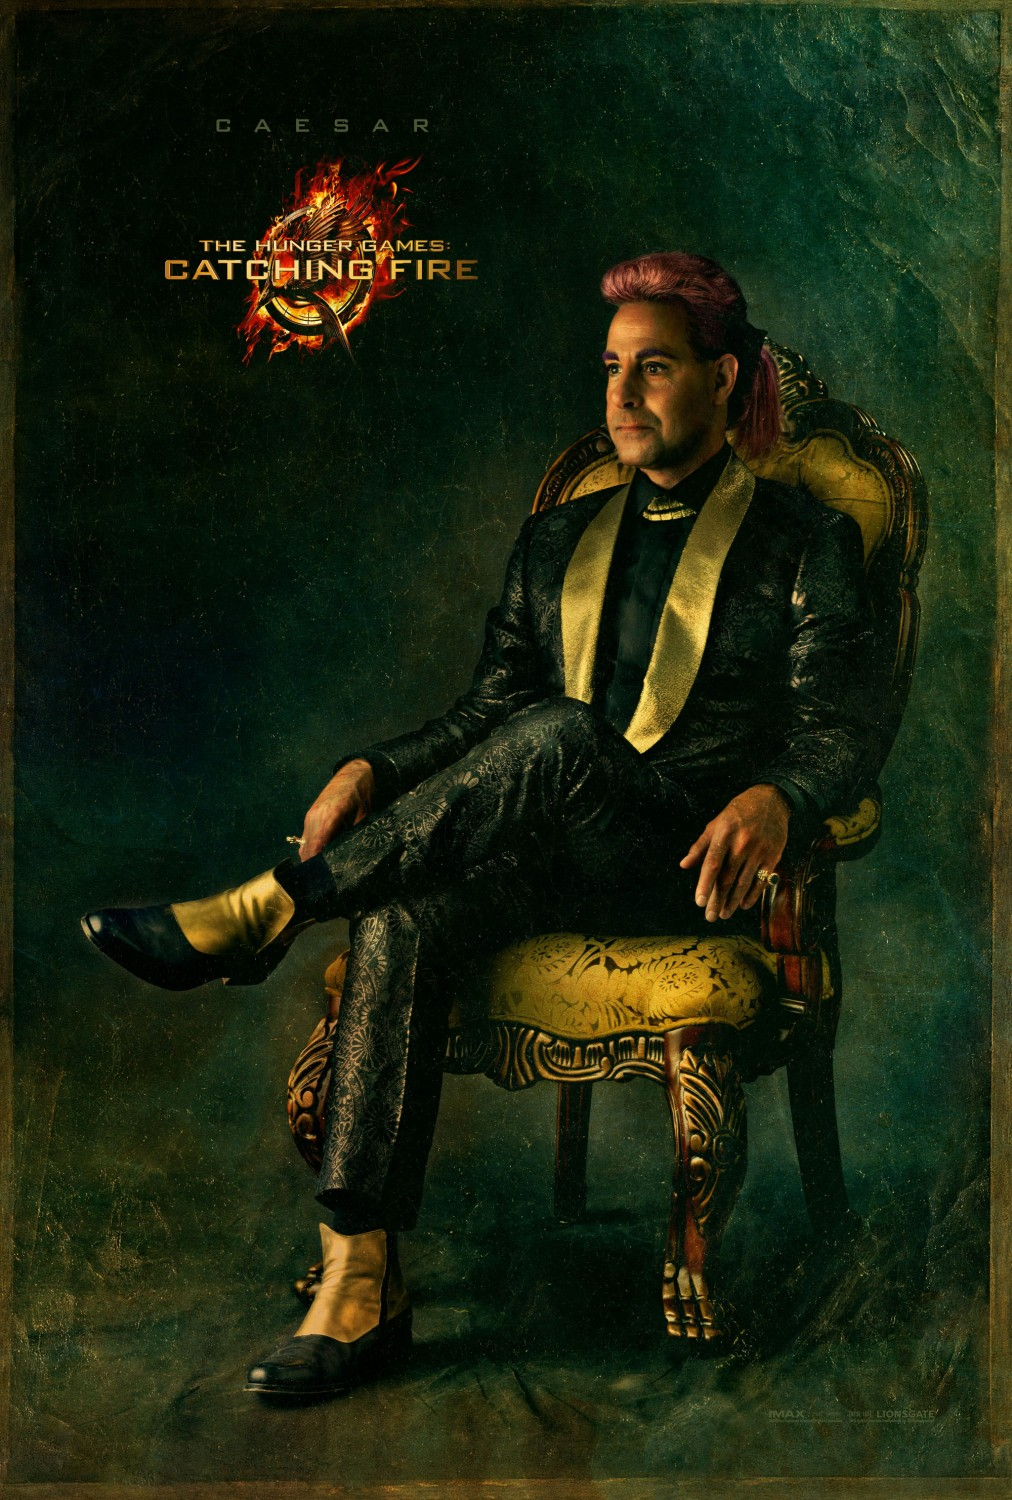 The Hunger Games: Catching Fire Posters (2013)